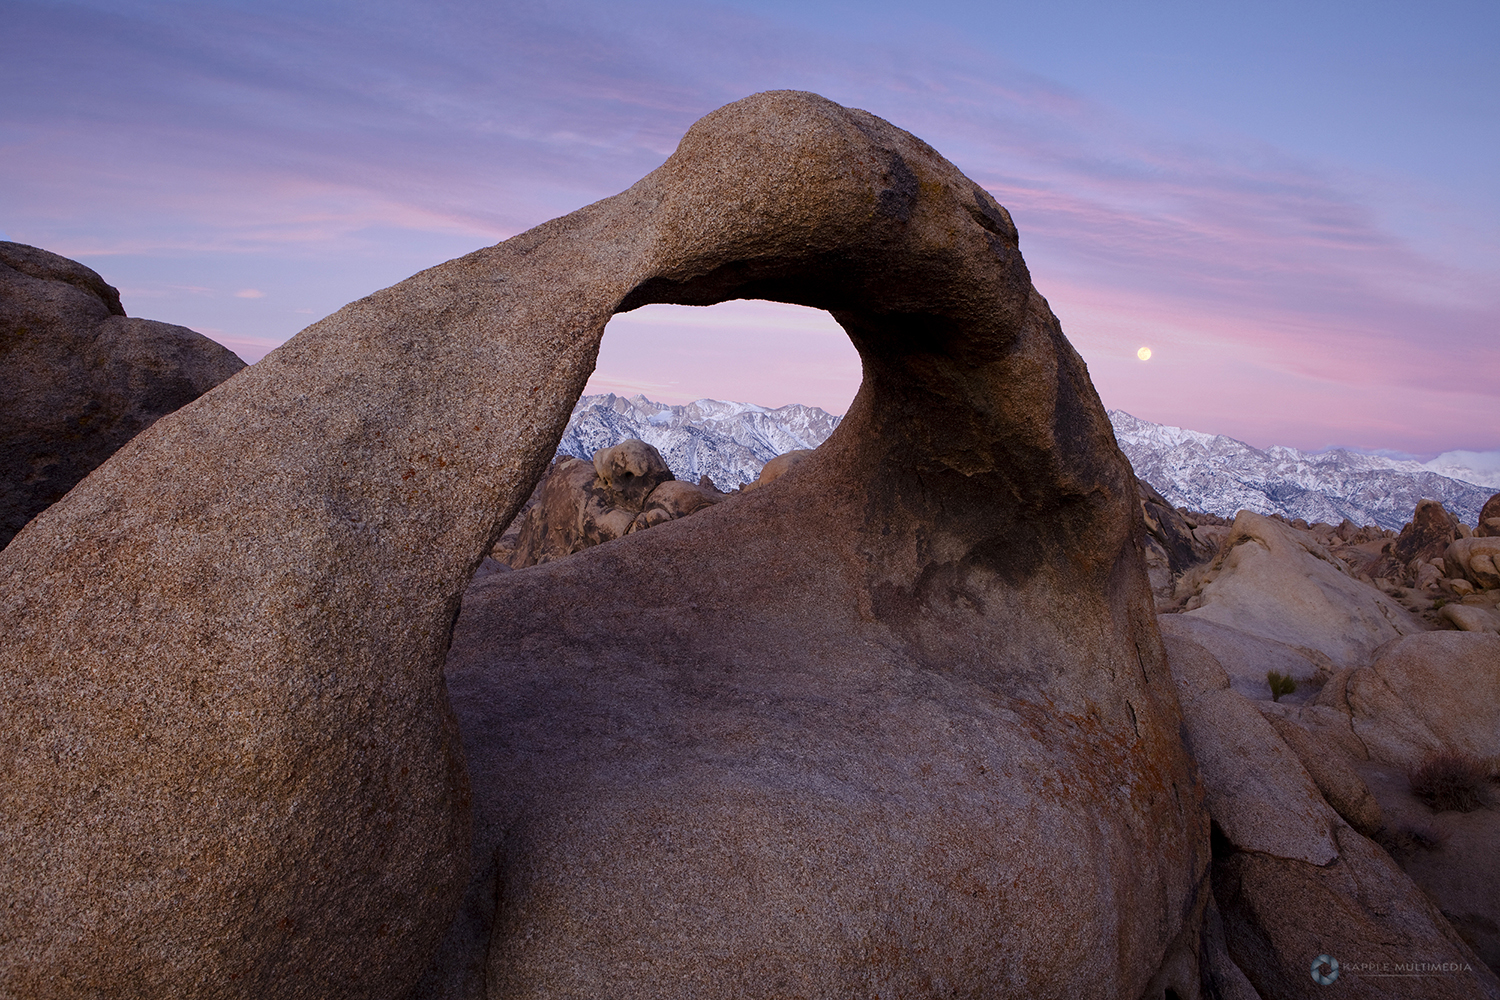 Sunrise at Mobius Arch in the Alabama Hills with the Sierras in the background. Alabama Hills, Lone Pine, California, USA.